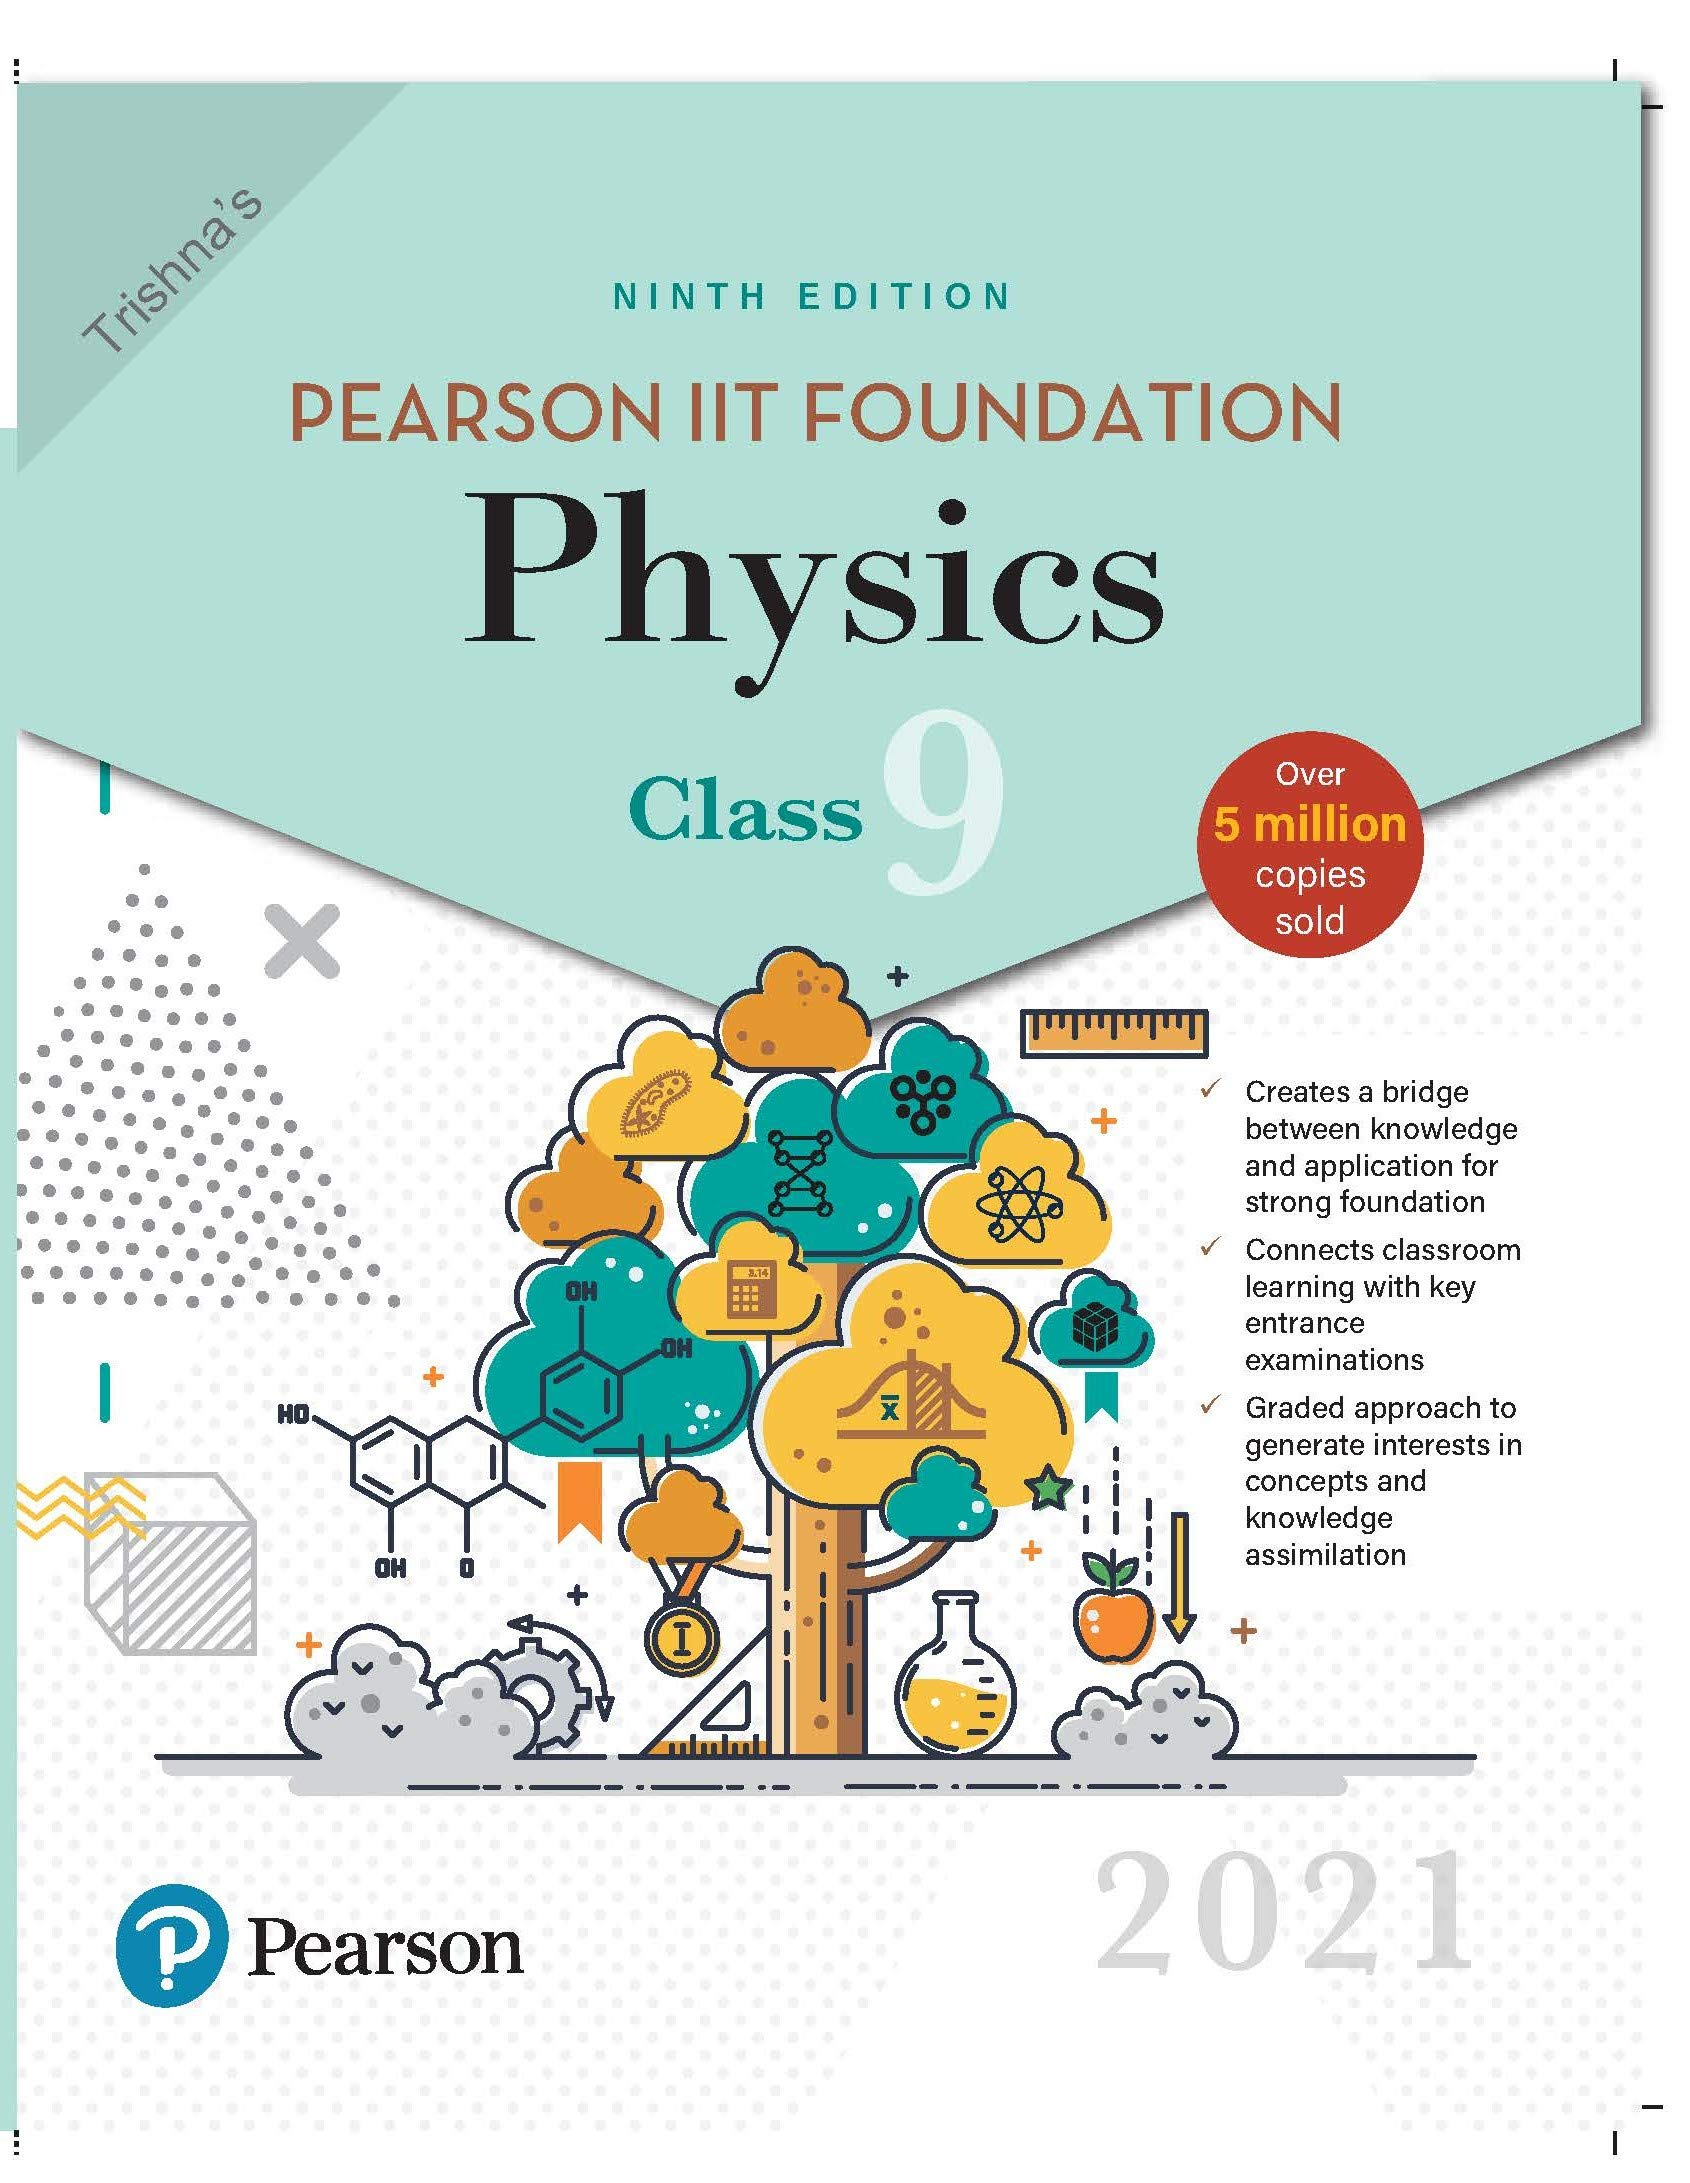 Pearson IIT Foundation Physics | Class 9| 2021 Edition| By Pearson